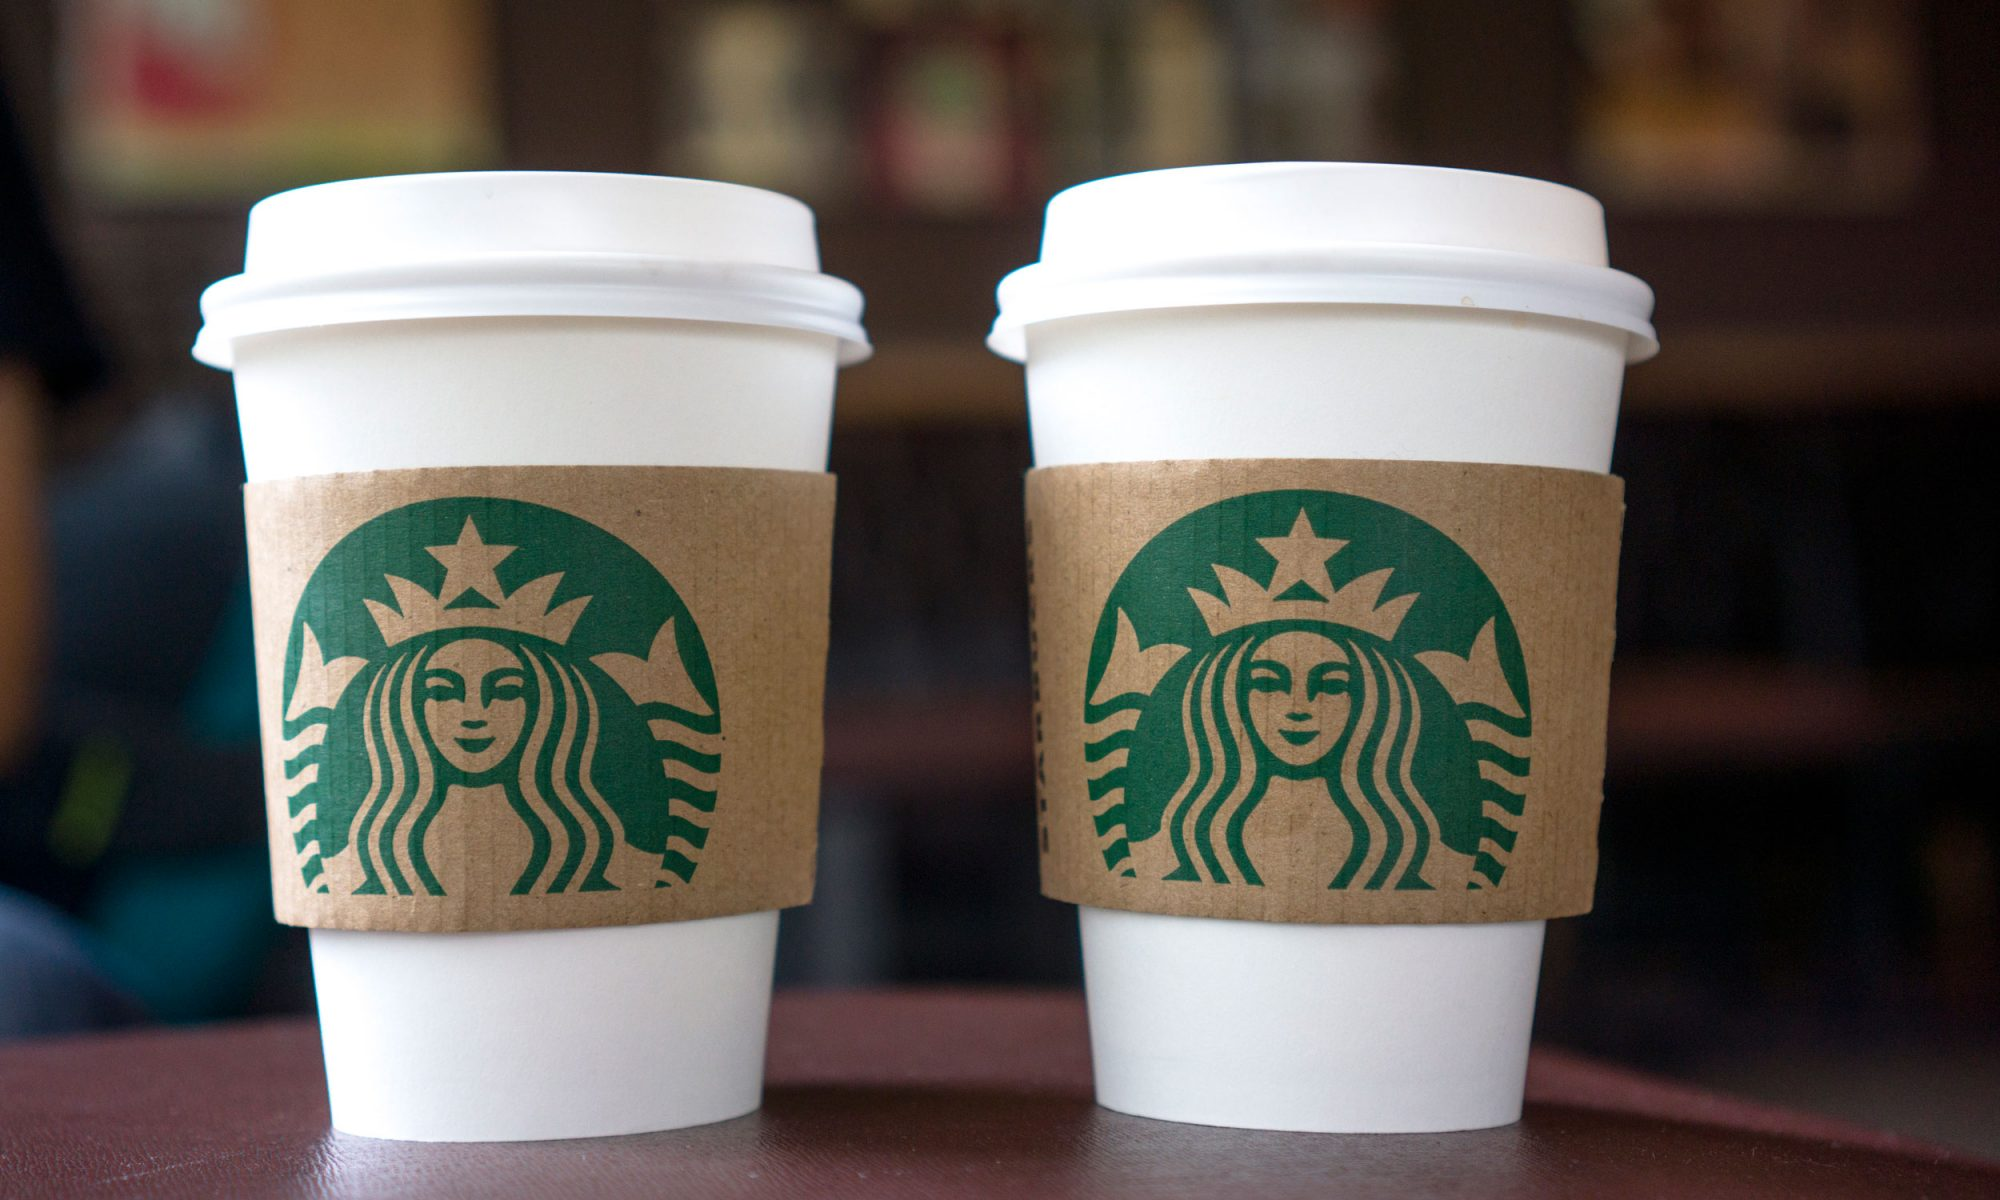 EC: At Starbucks in Italy, You Won't Feel Like a Poseur Asking for a Venti